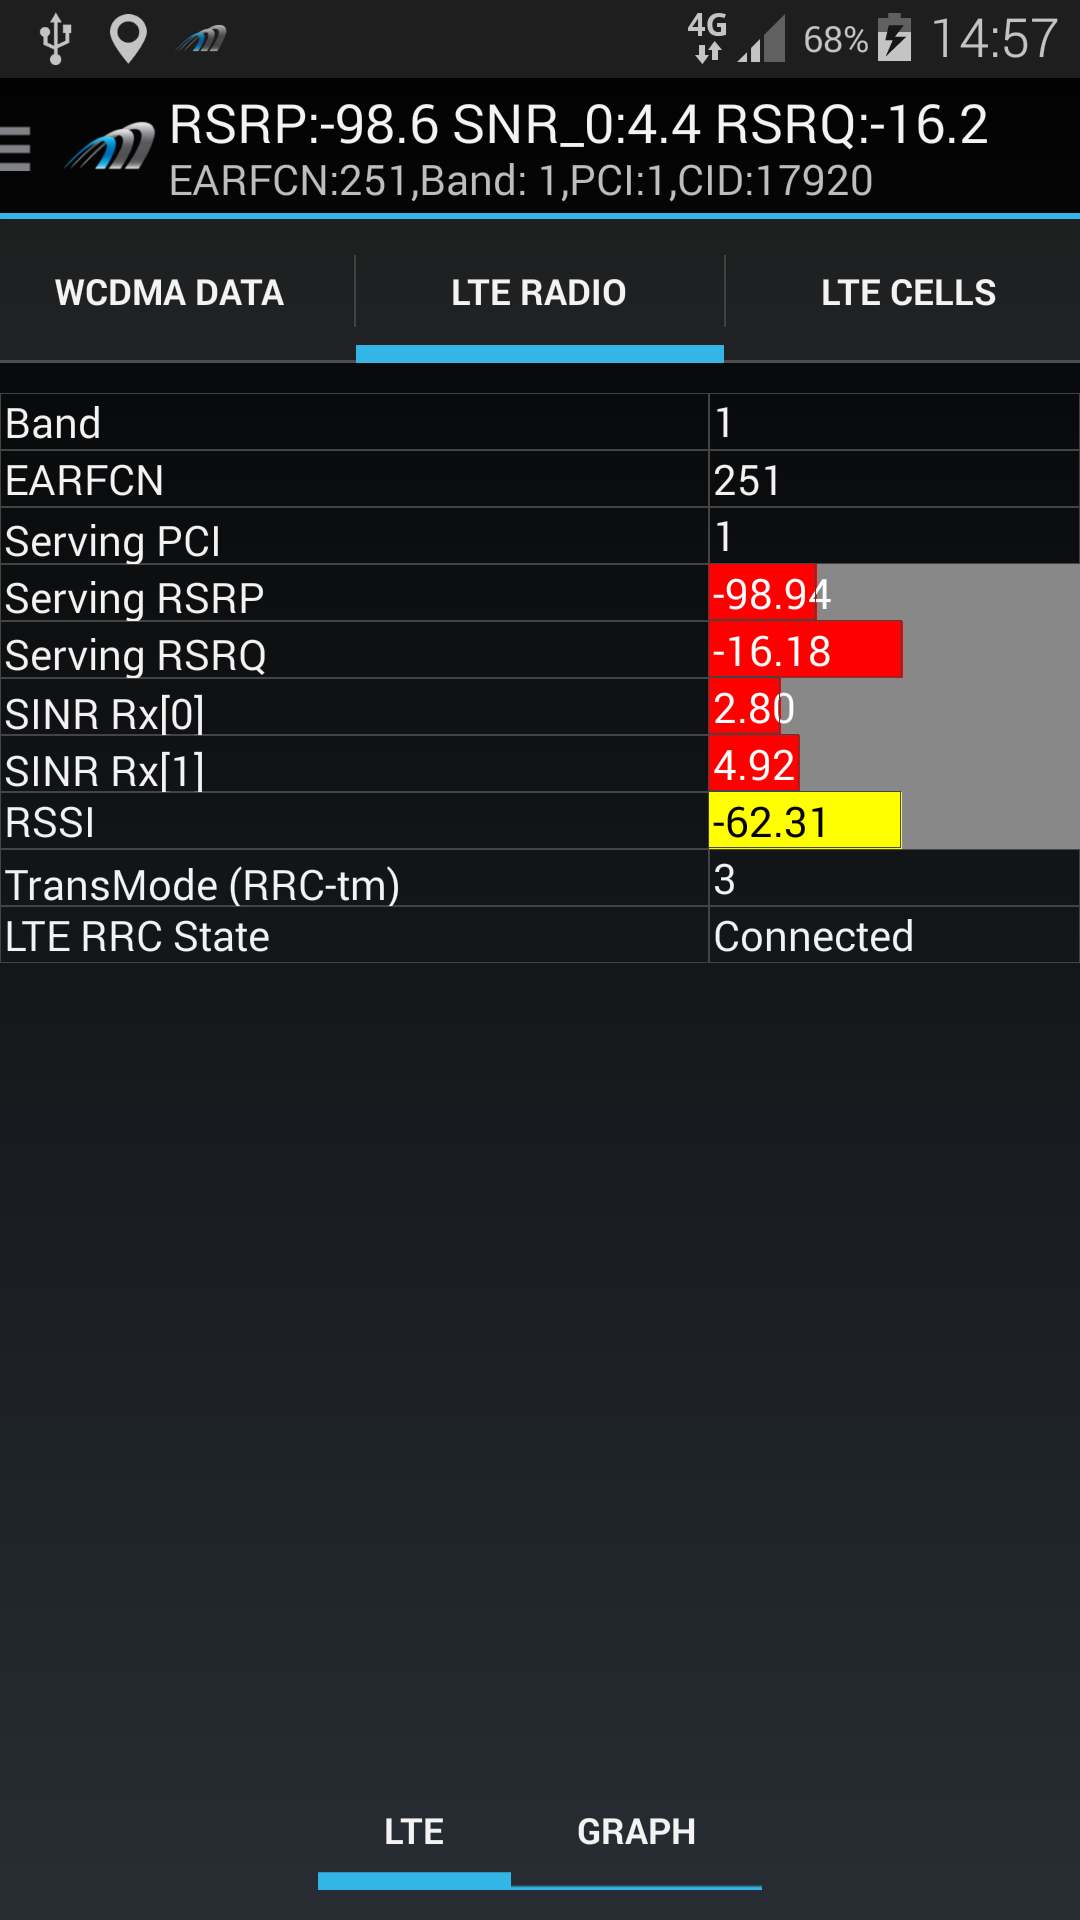 AZQ on Samsung S5 LTE Radio Parameters